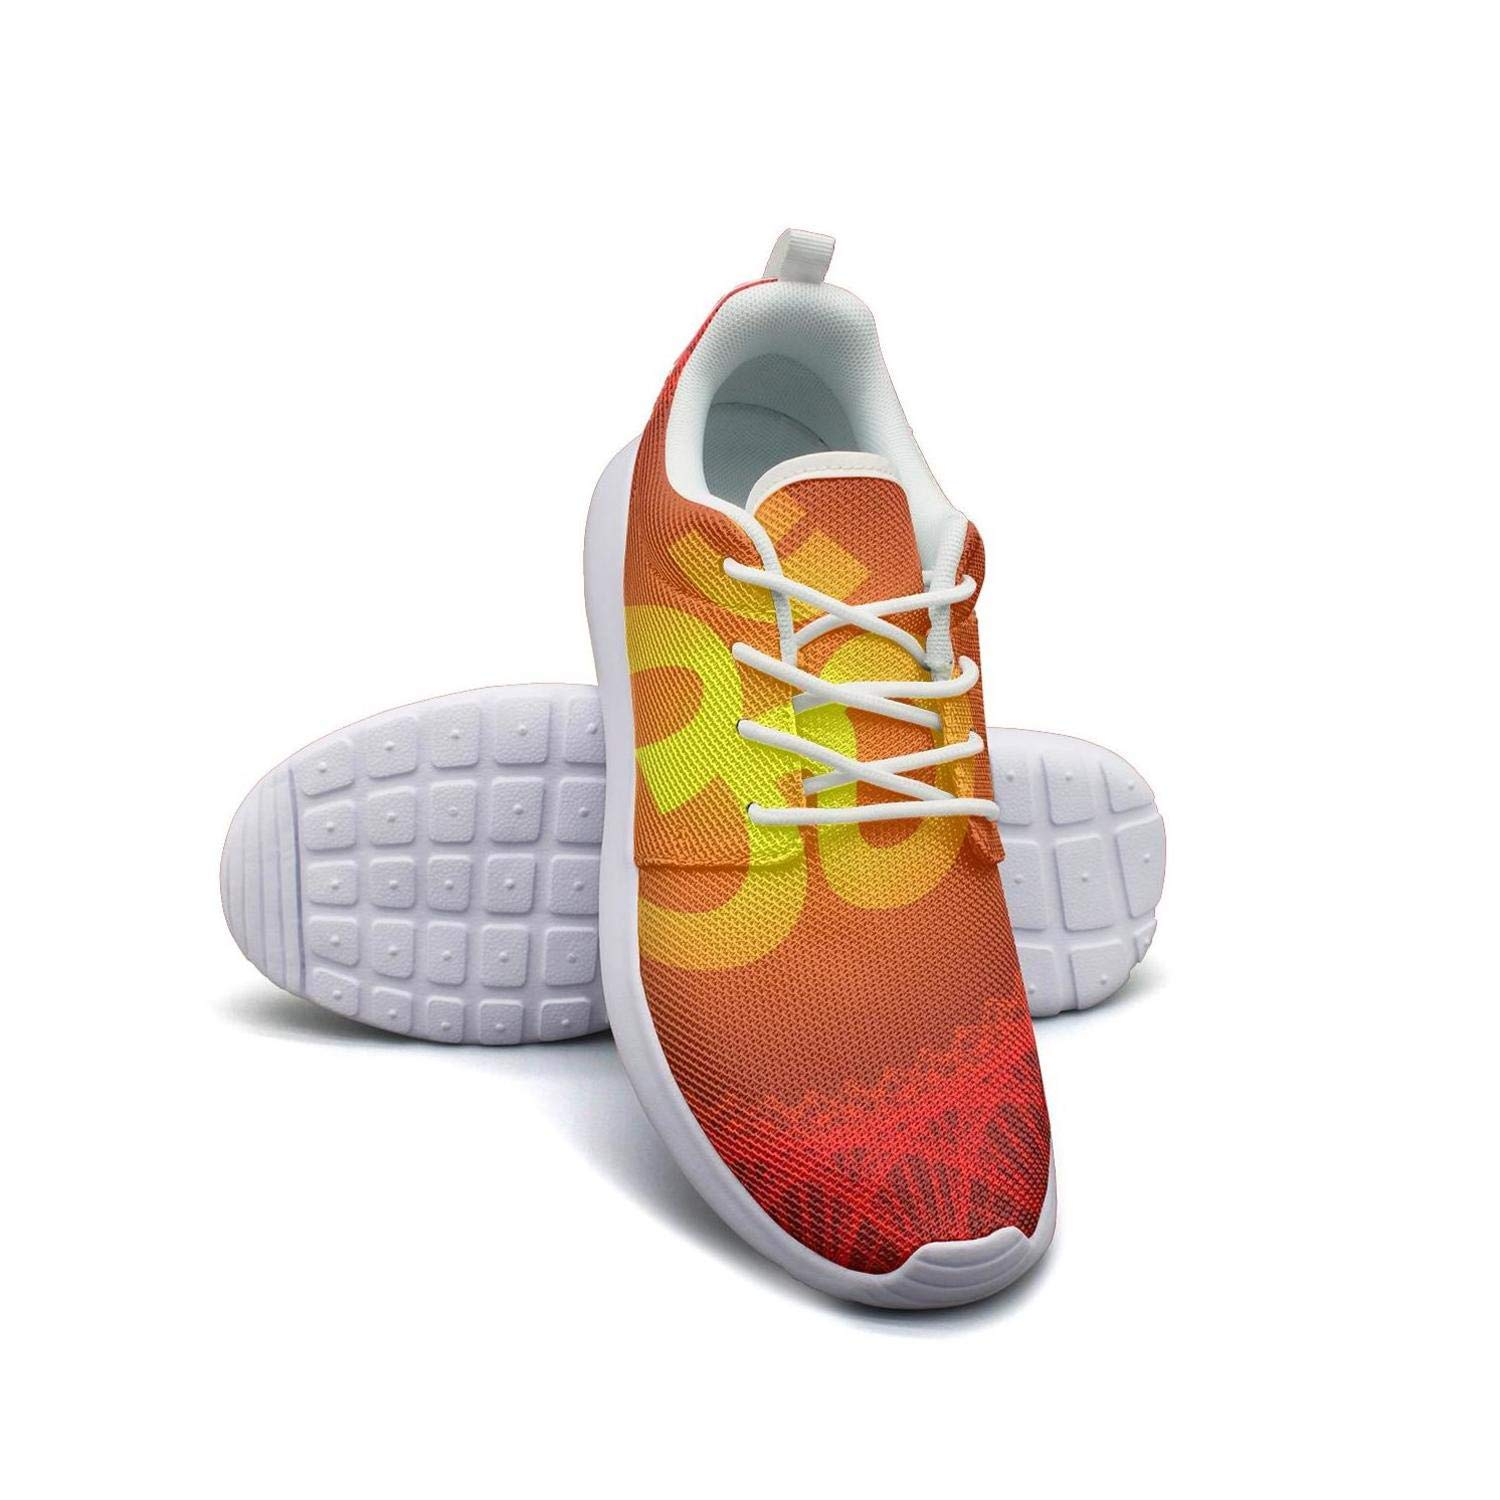 Hobart dfgrwe Watercolo Ornament Womans Flat Bottom Casual Shoes Sneakers New Running Shoes